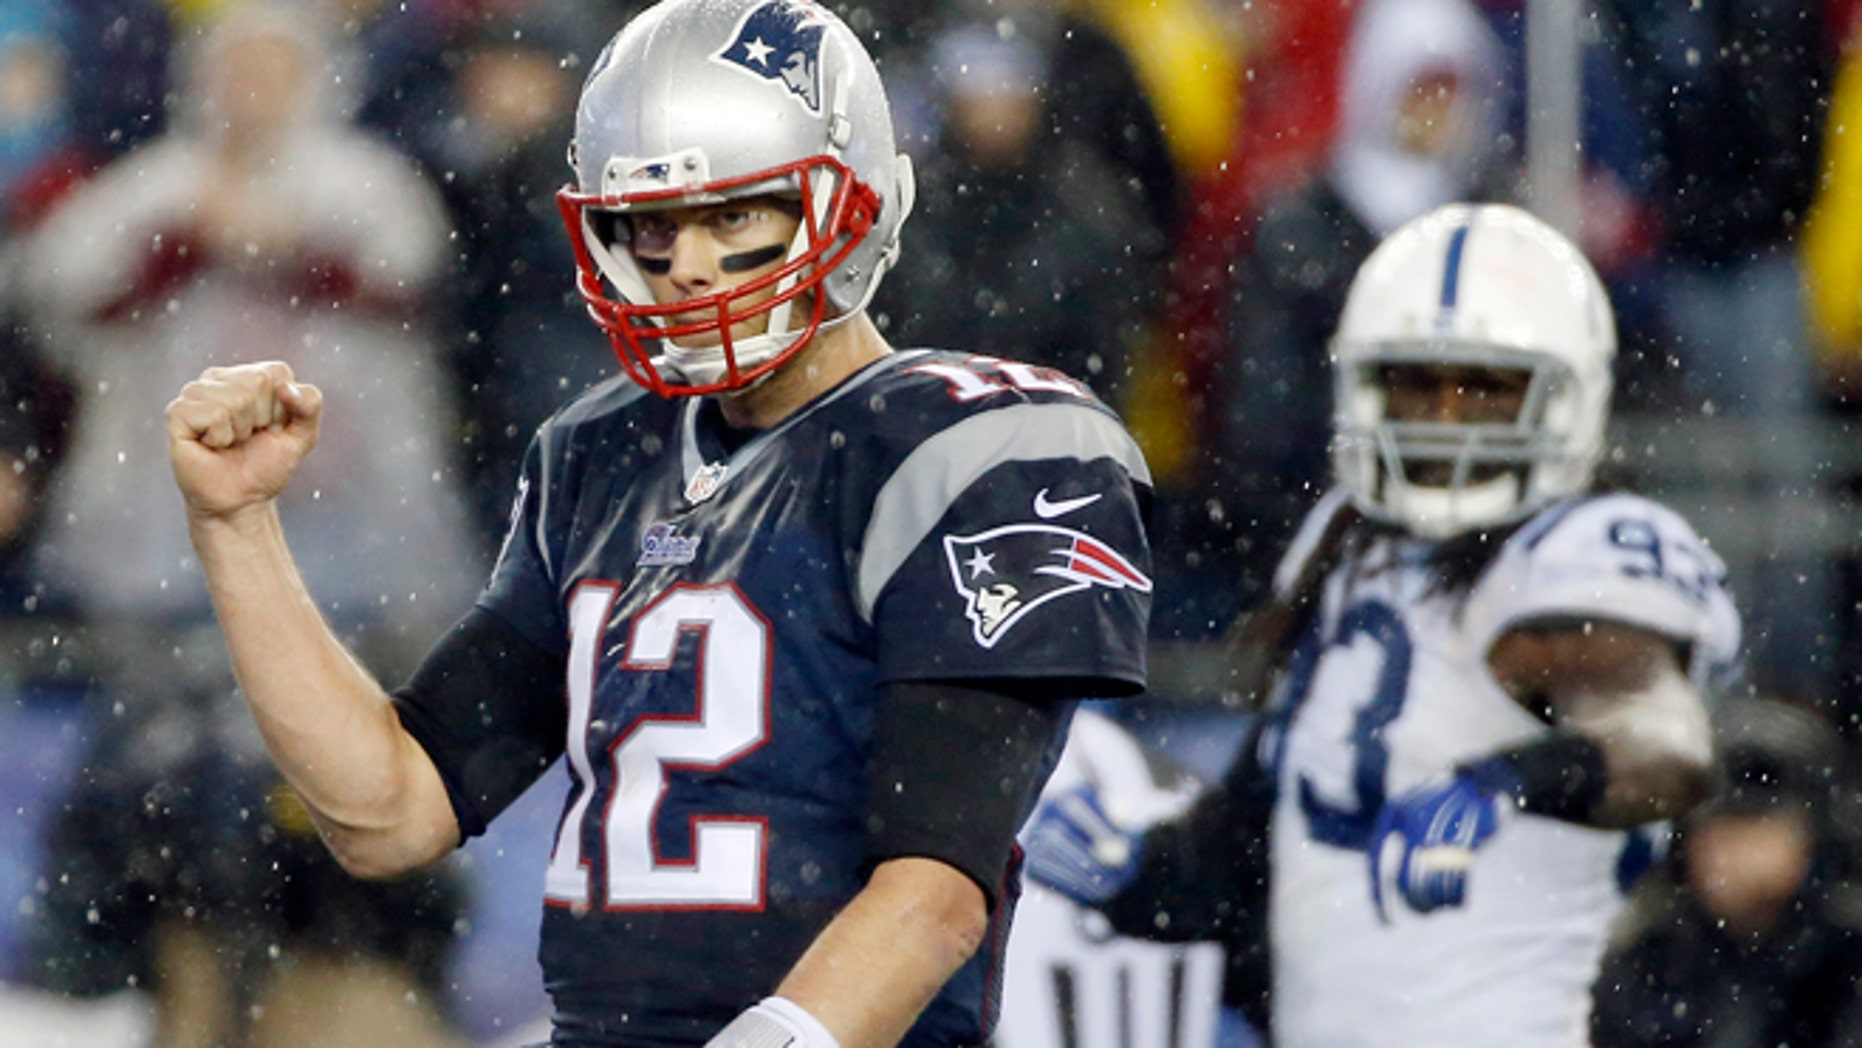 Jan. 18, 2015: New England Patriots quarterback Tom Brady (12) celebrates LeGarrette Blount's touchdown during the second half of the NFL football AFC Championship game against the Indianapolis Colts.